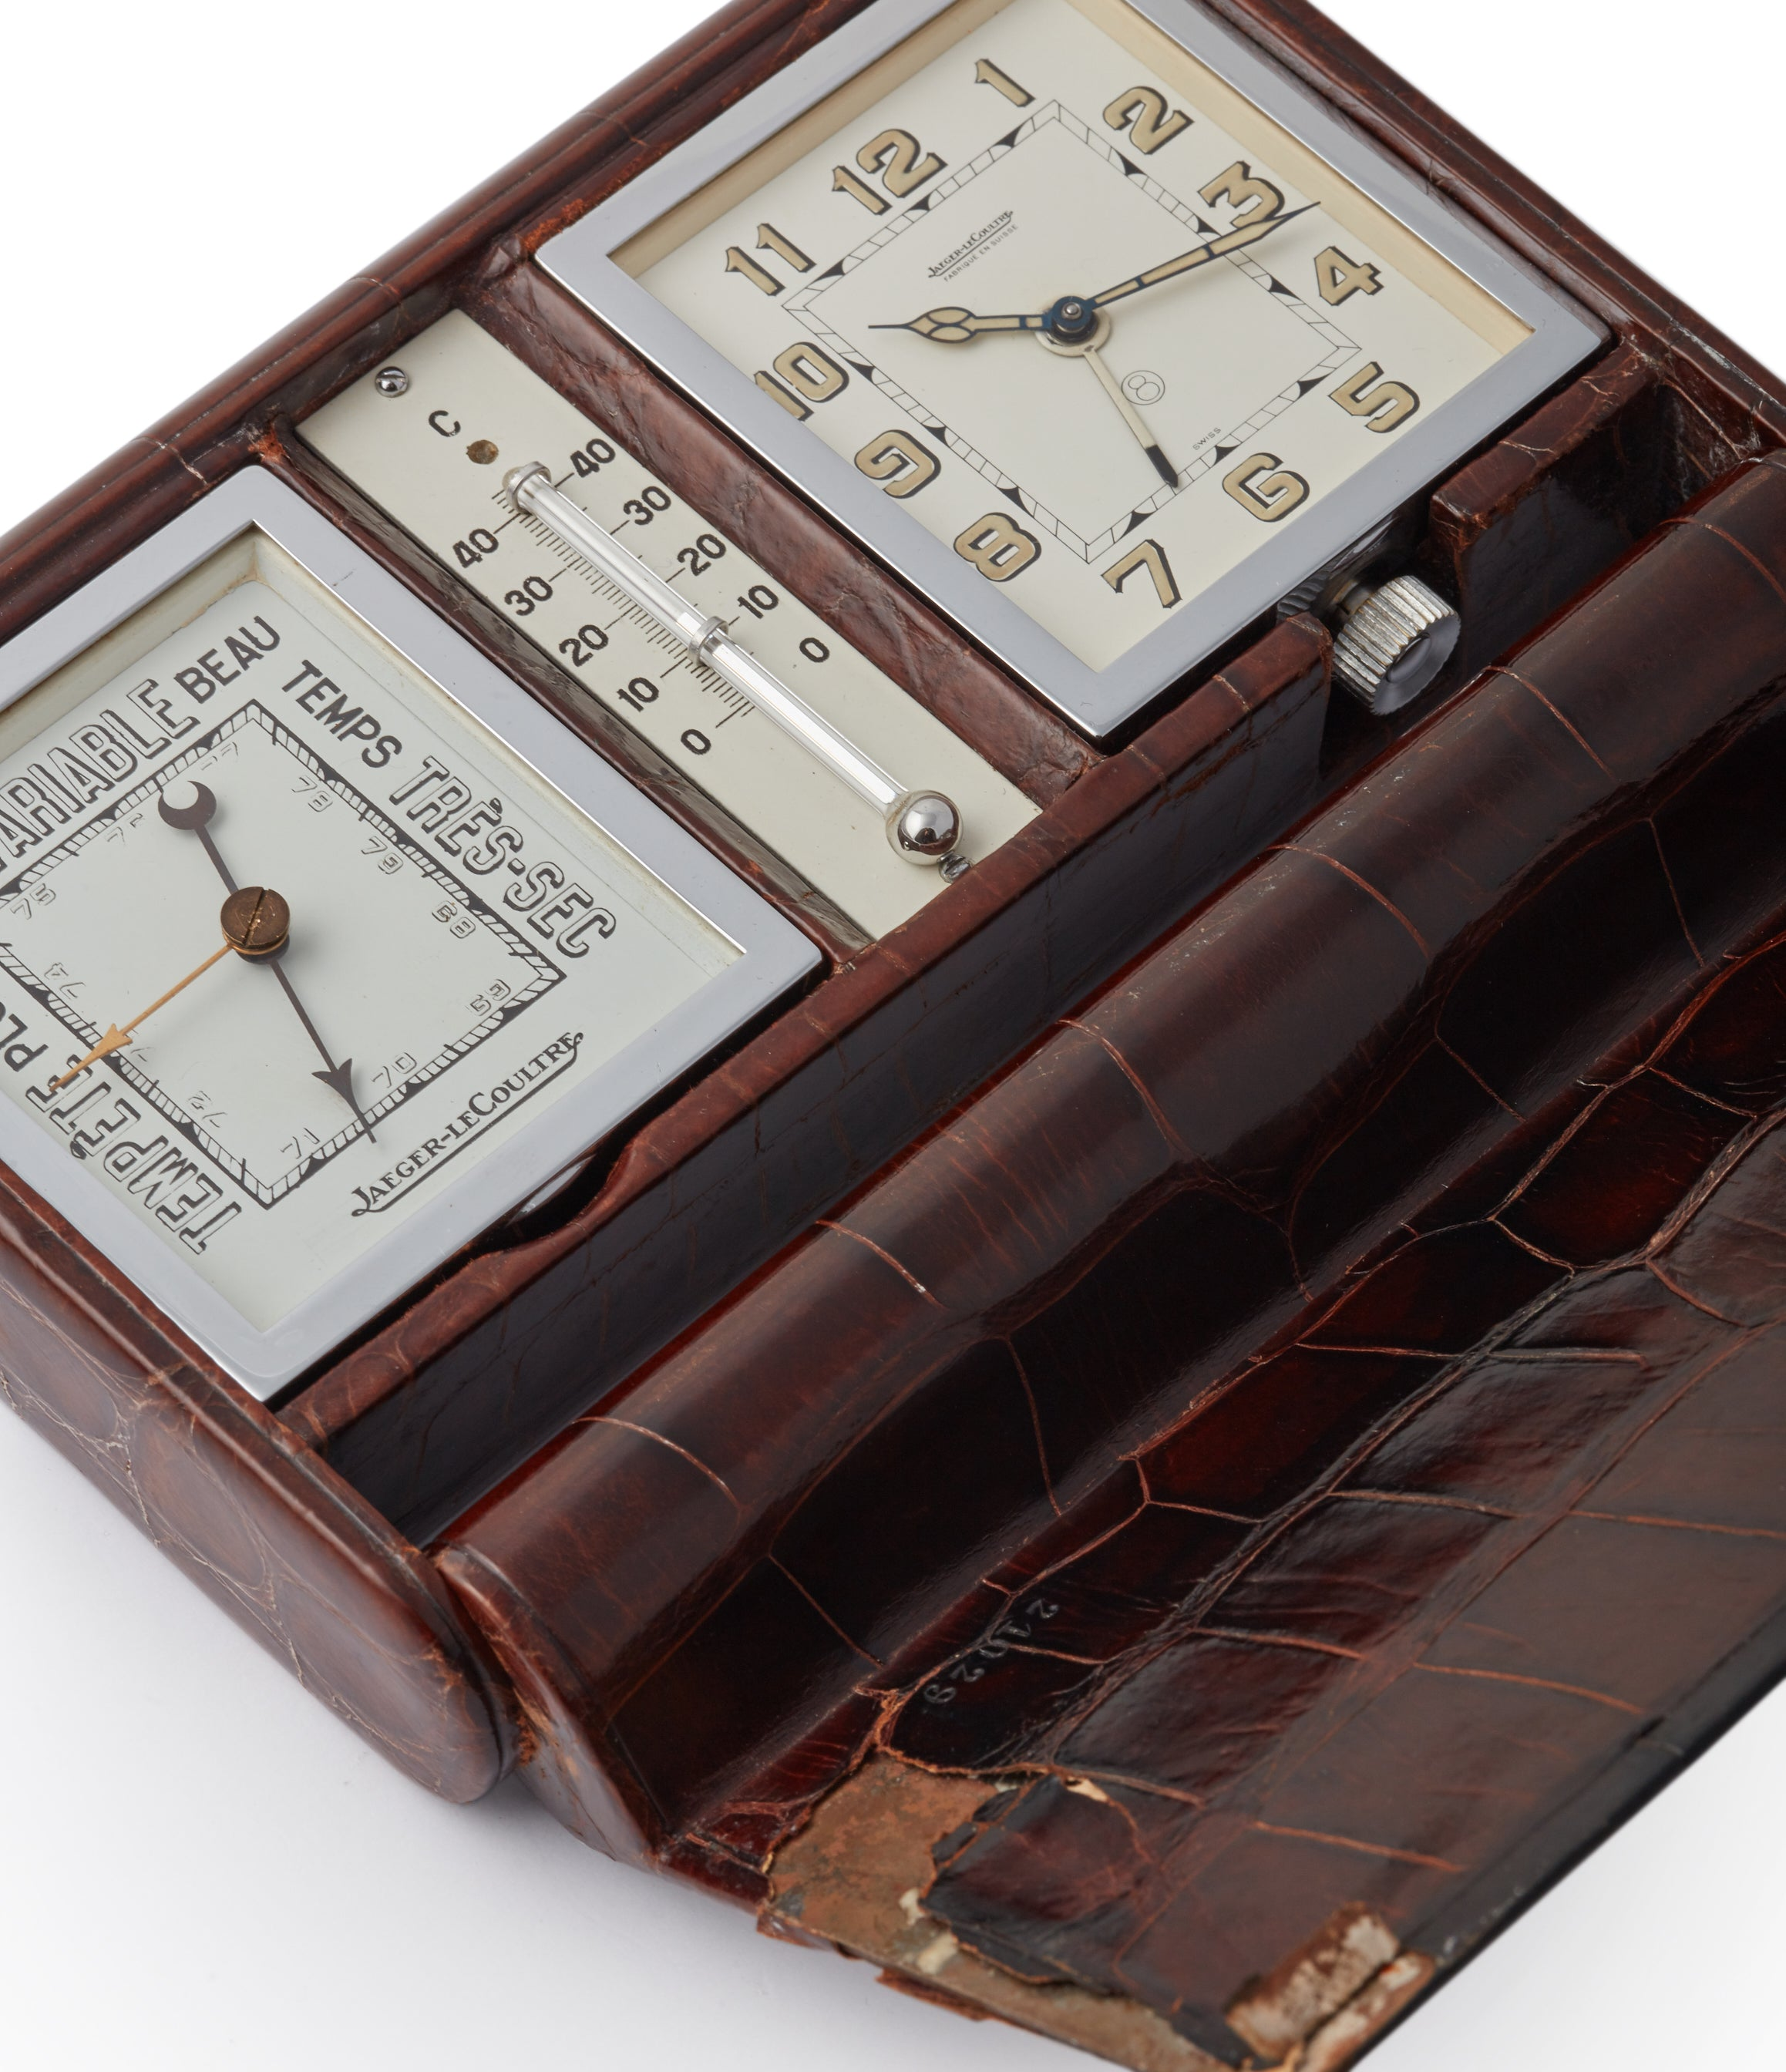 Jaeger-LeCoultre barometer thermometer weather station travel alarm desktop vintage clock for sale online A Collected Man London